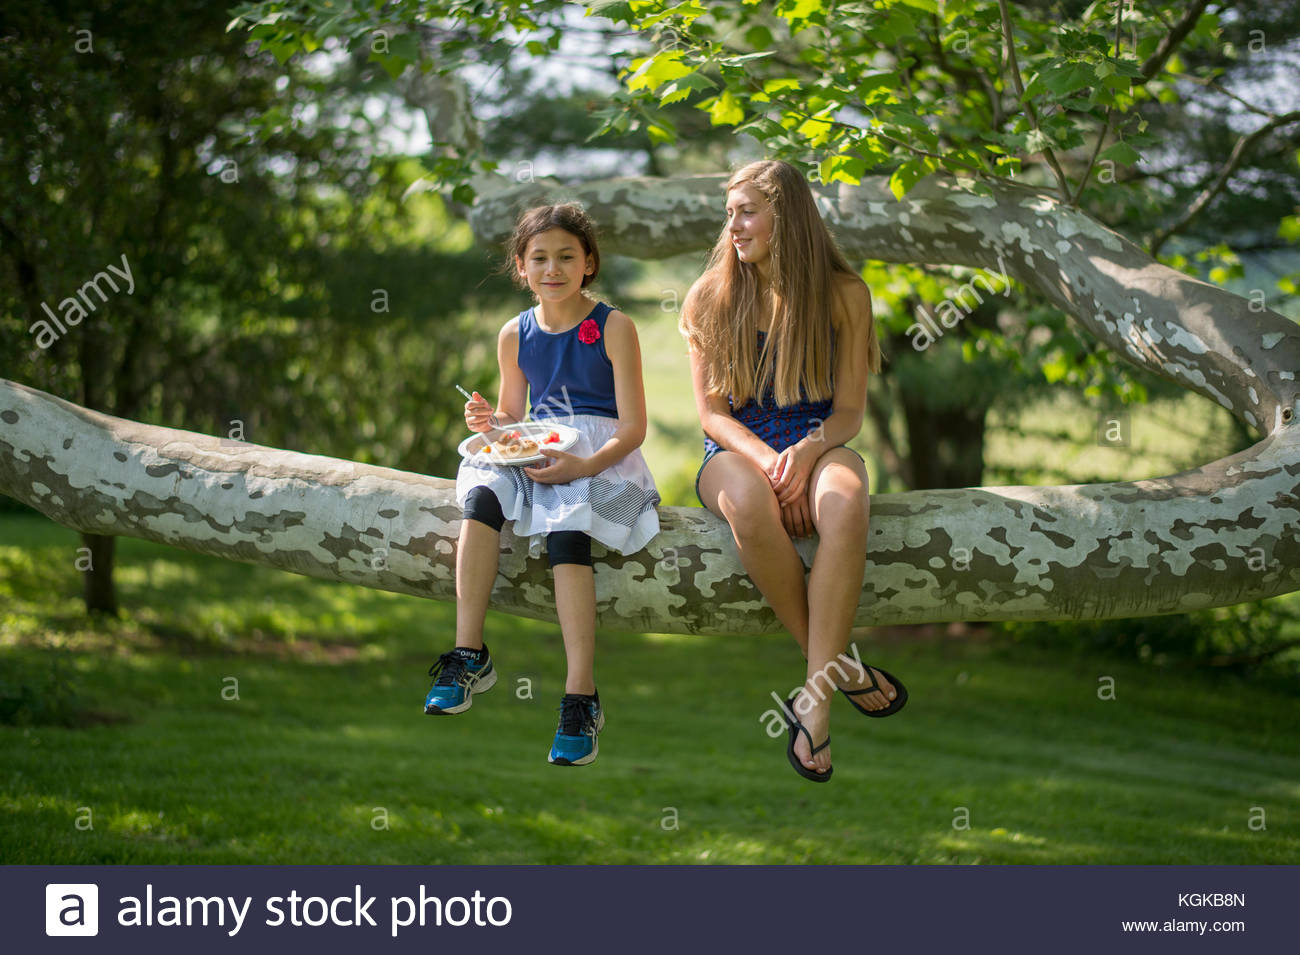 Two girls sit together on a large tree branch. - Stock Image